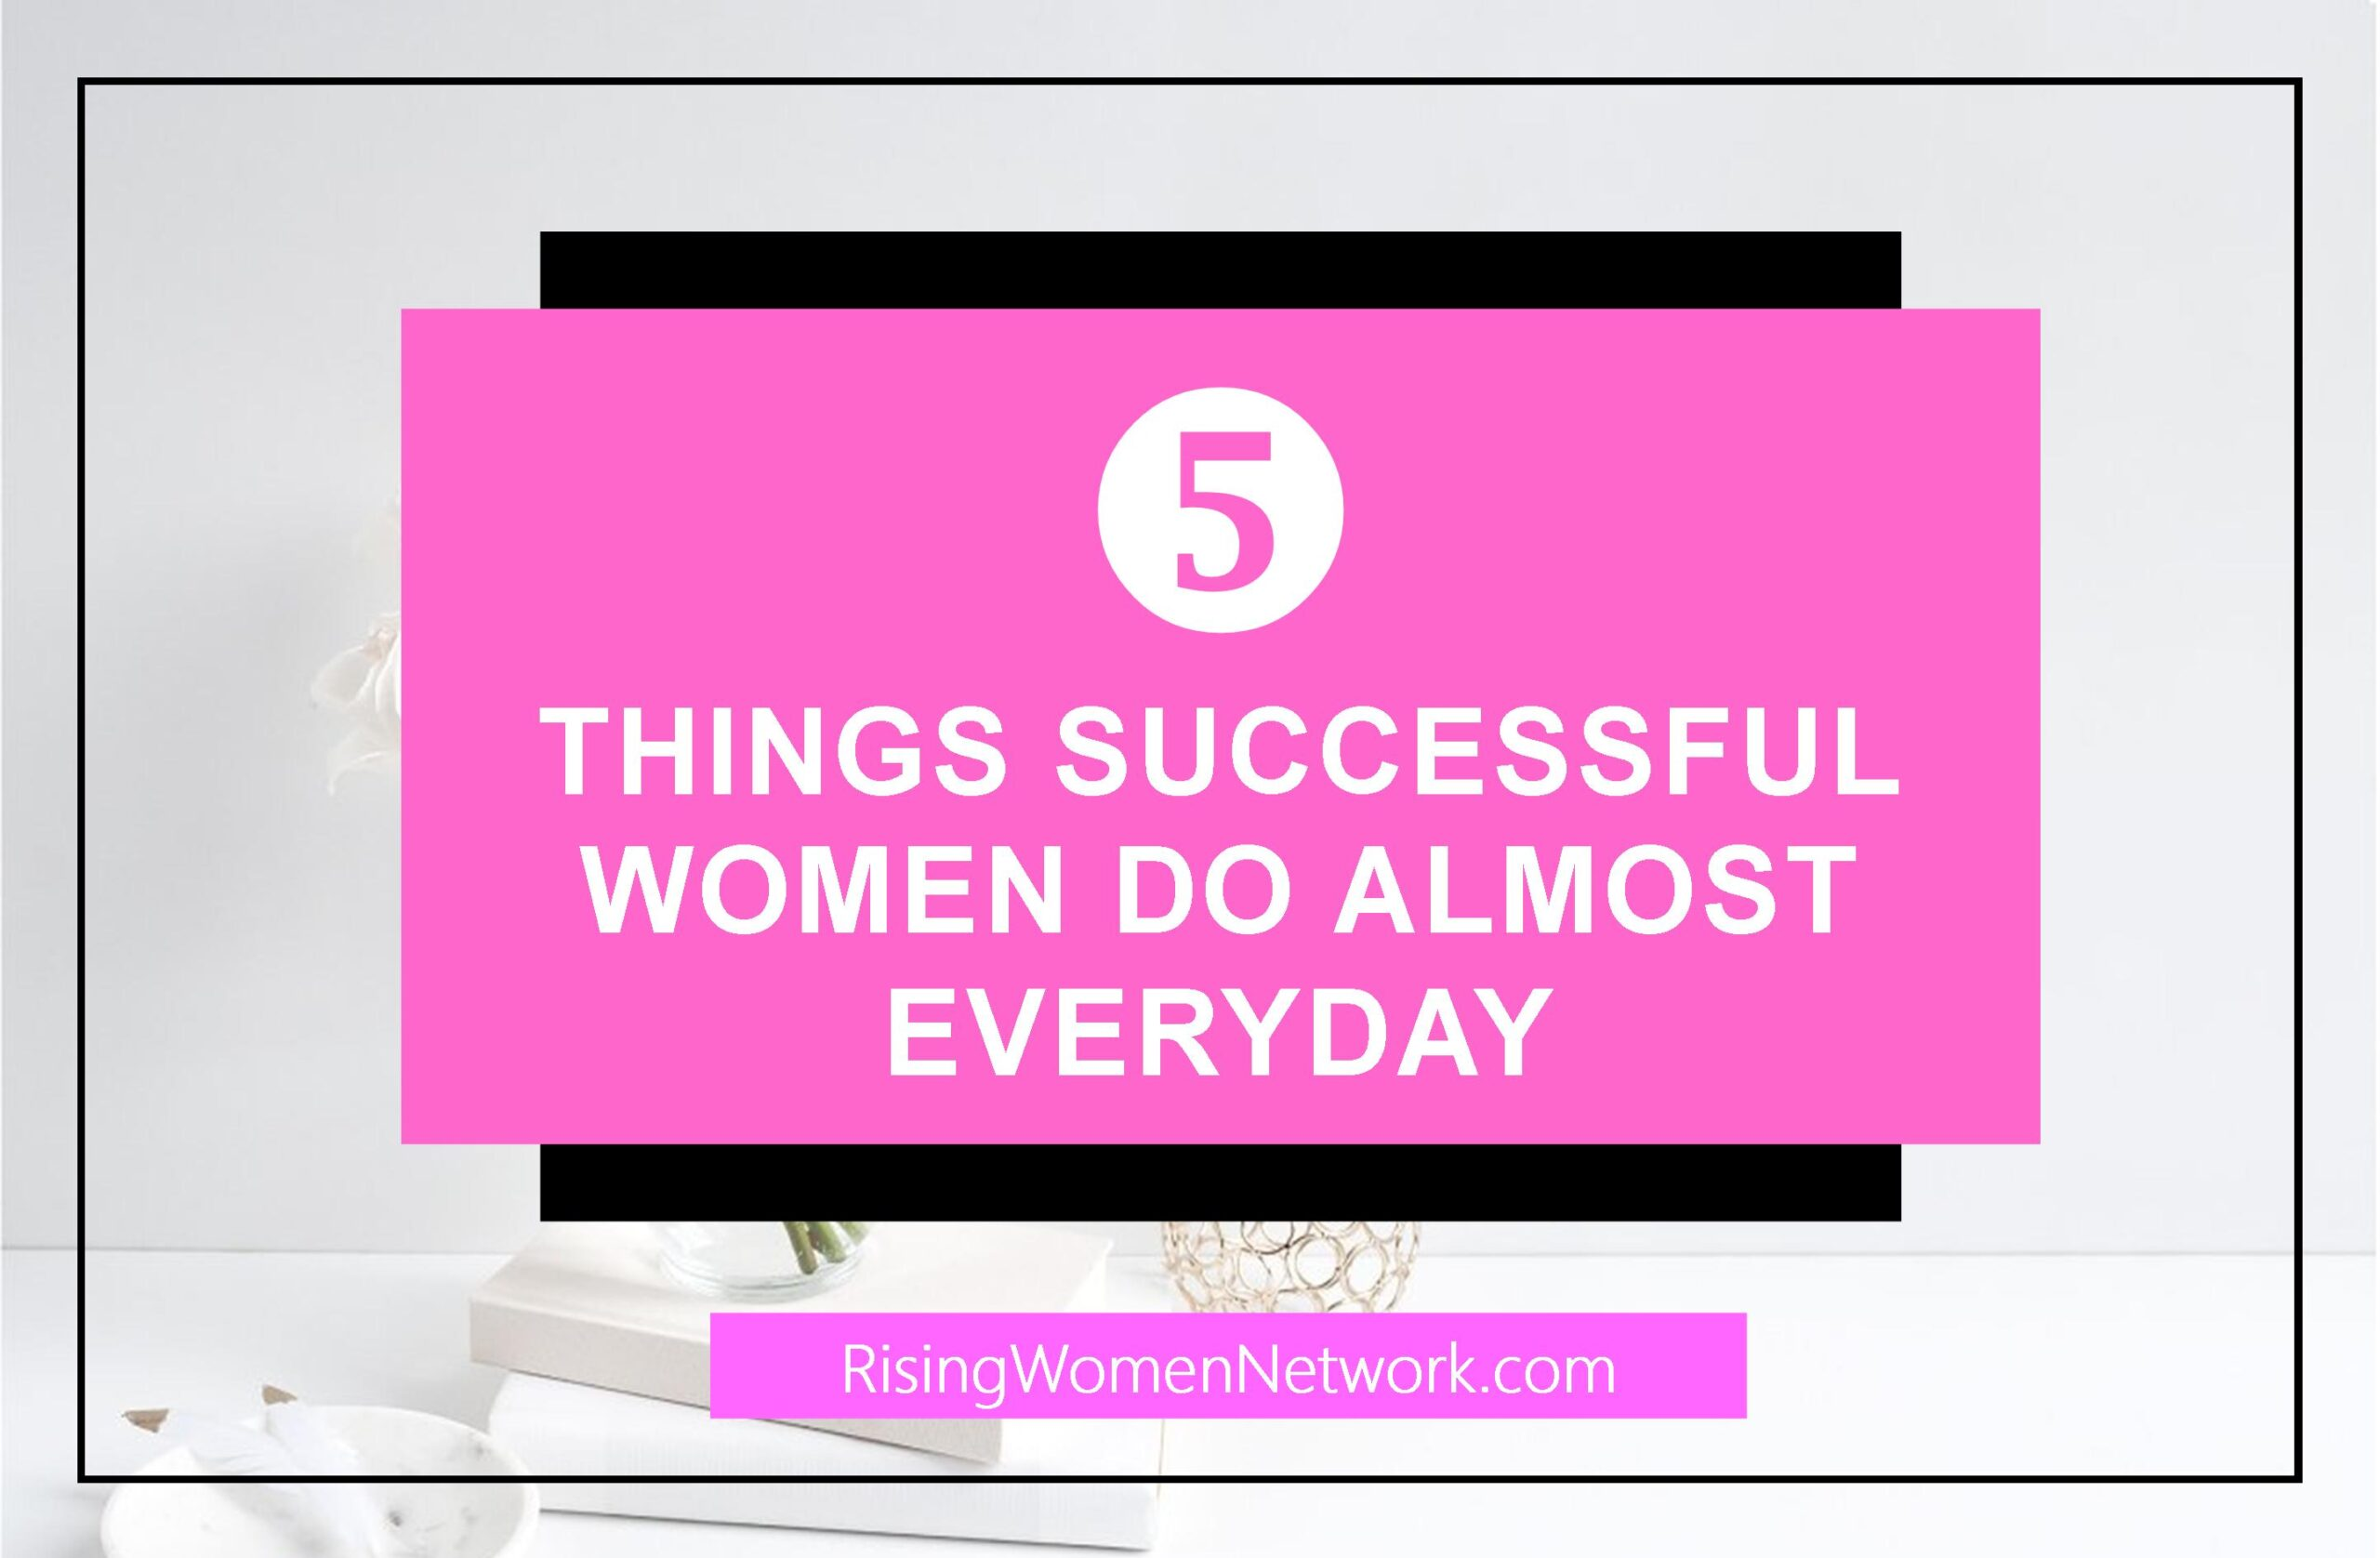 As ambitious female entrepreneurs, we really want to have it all and do it all and be successful women! But realistically, we can't transform overnight.